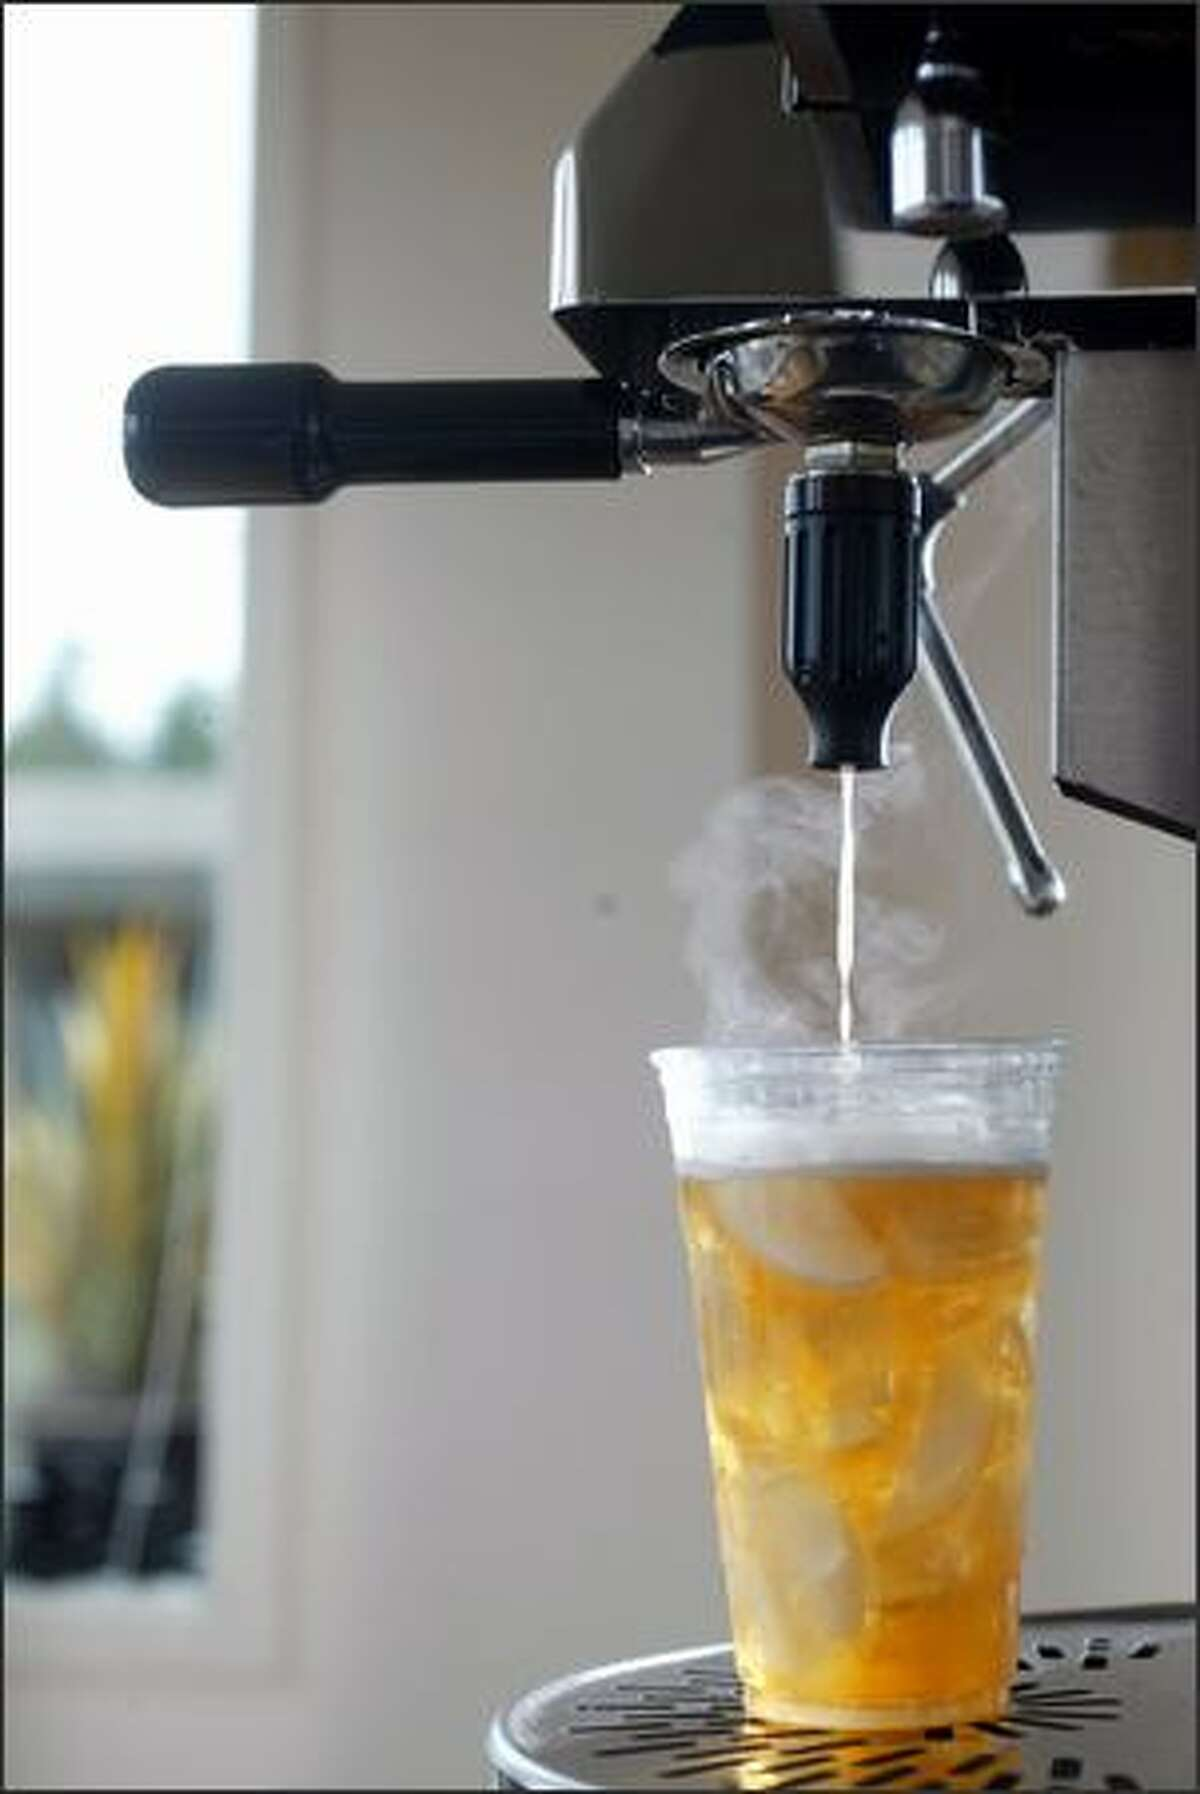 Affinitea's tea infuser is based on espresso technology. It delivers a cup of brewed tea in 30 seconds.